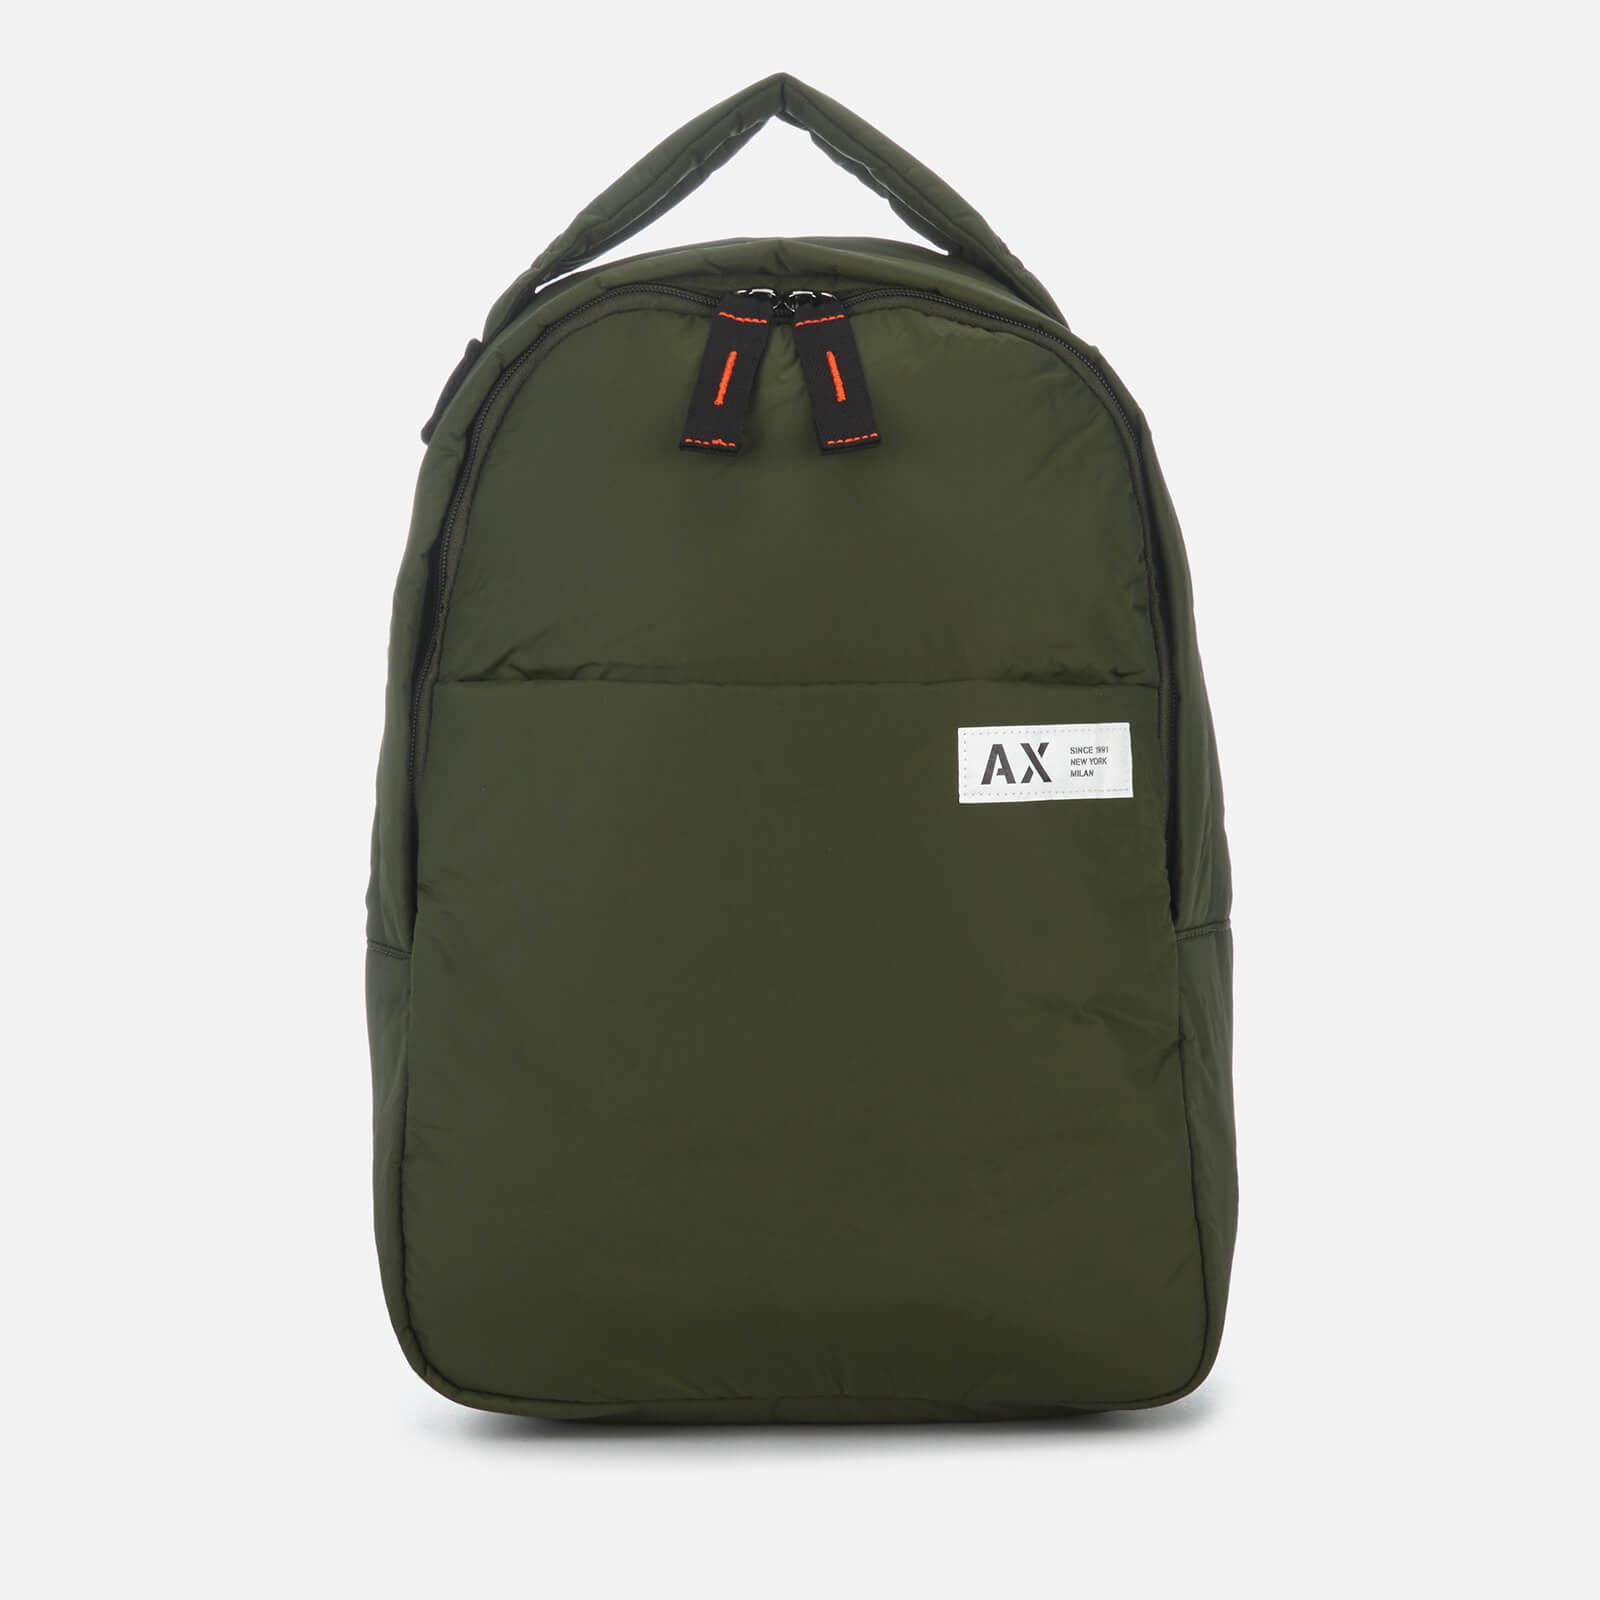 95e48305cd5 Lyst - Armani Exchange Padded Nylon Backpack in Green for Men